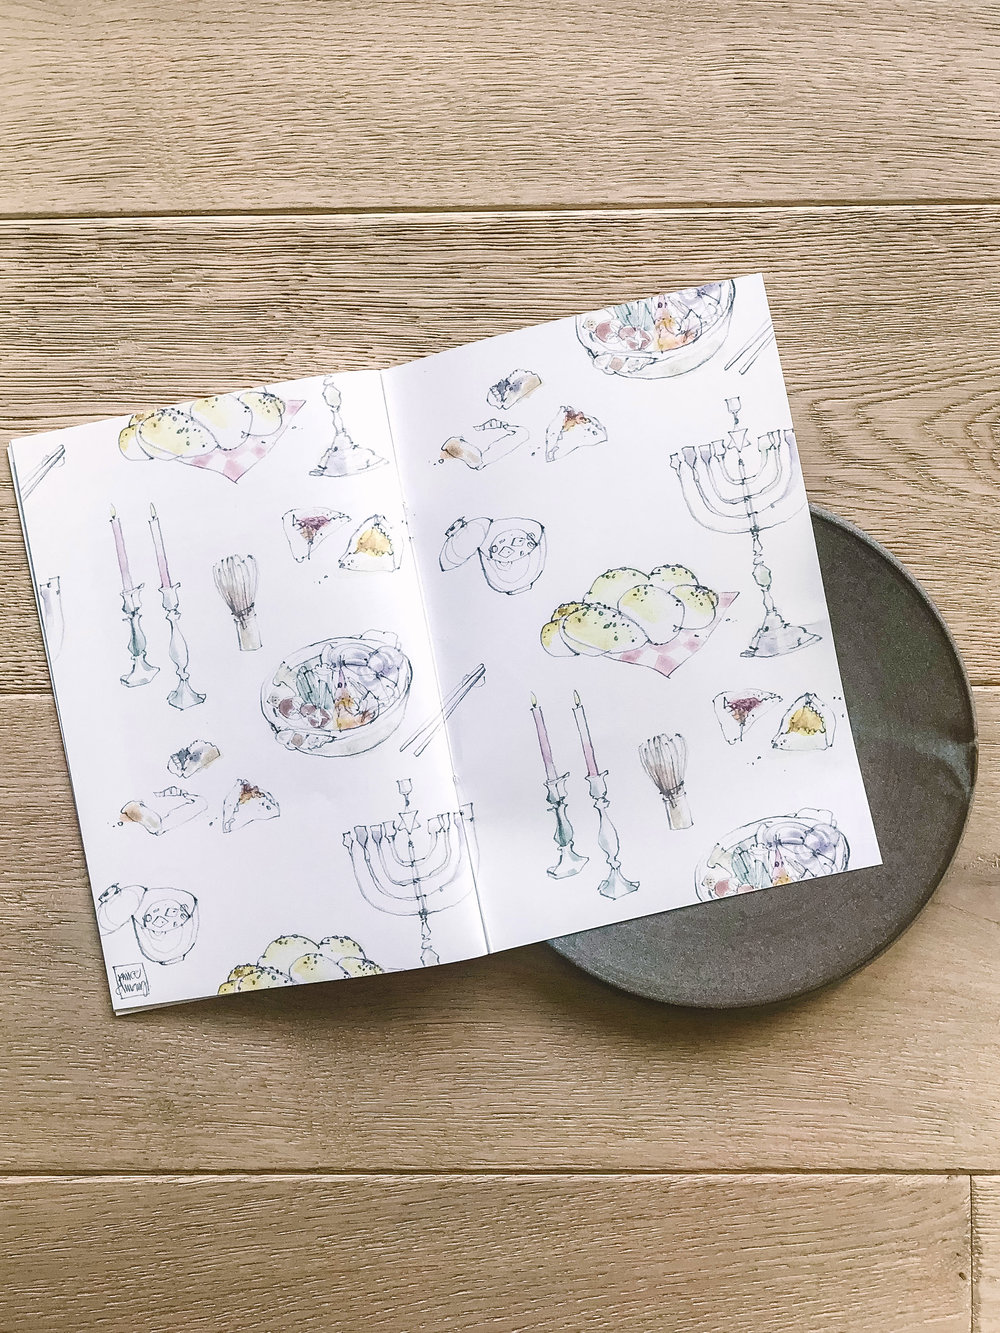 These pencil + watercolor illustrations were done in collaboration with Kristin Eriko Posner of Nourish Co., featuring food and ritual items for their mini cookbook of easy, everyday recipes that blend Japanese and Jewish cuisines.